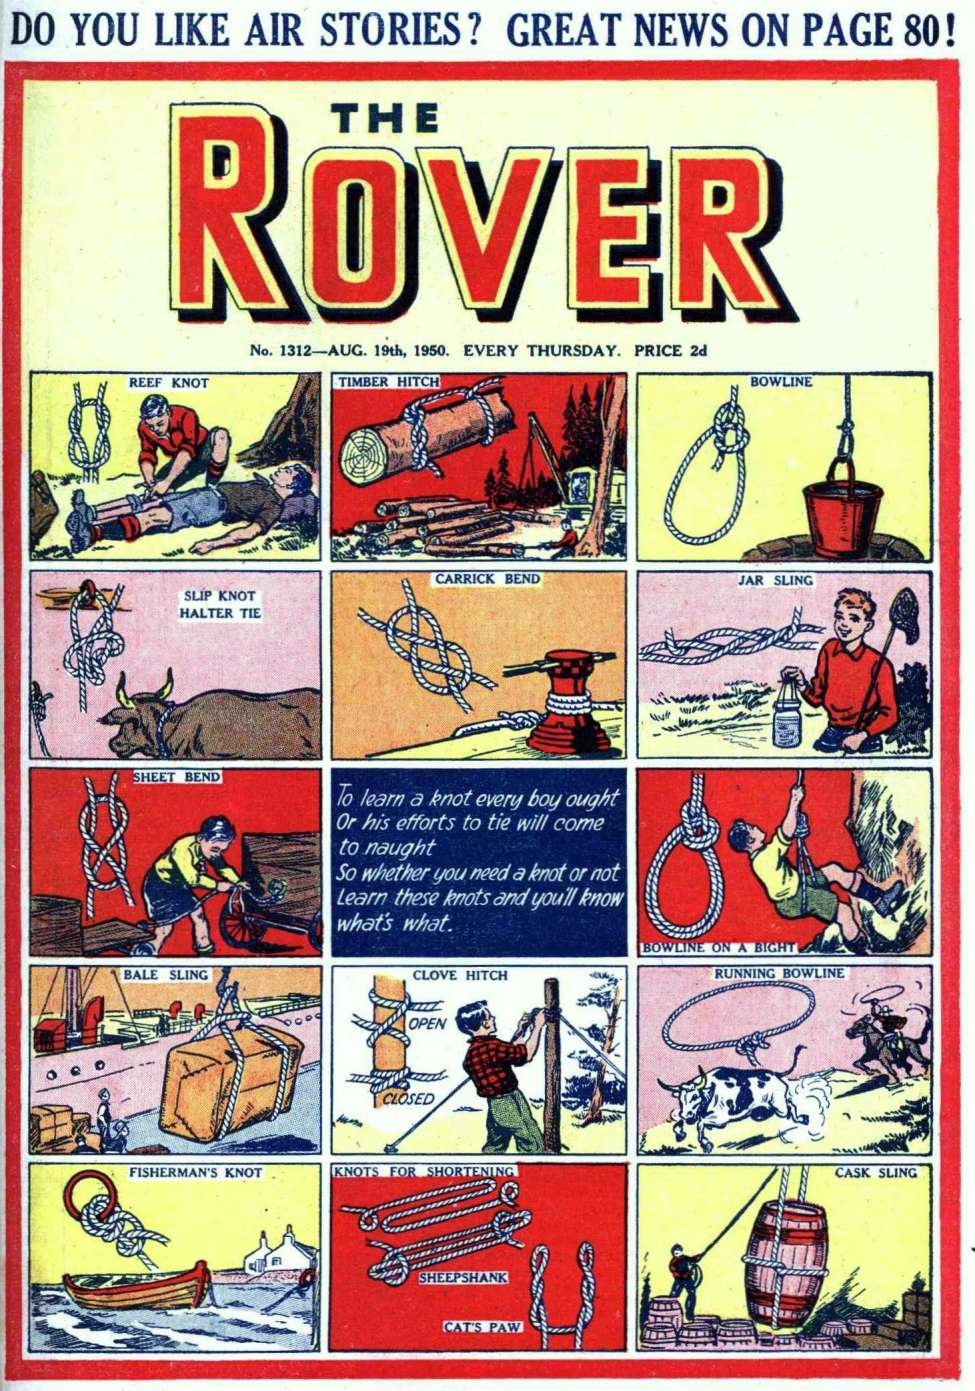 Comic Book Cover For The Rover 1312